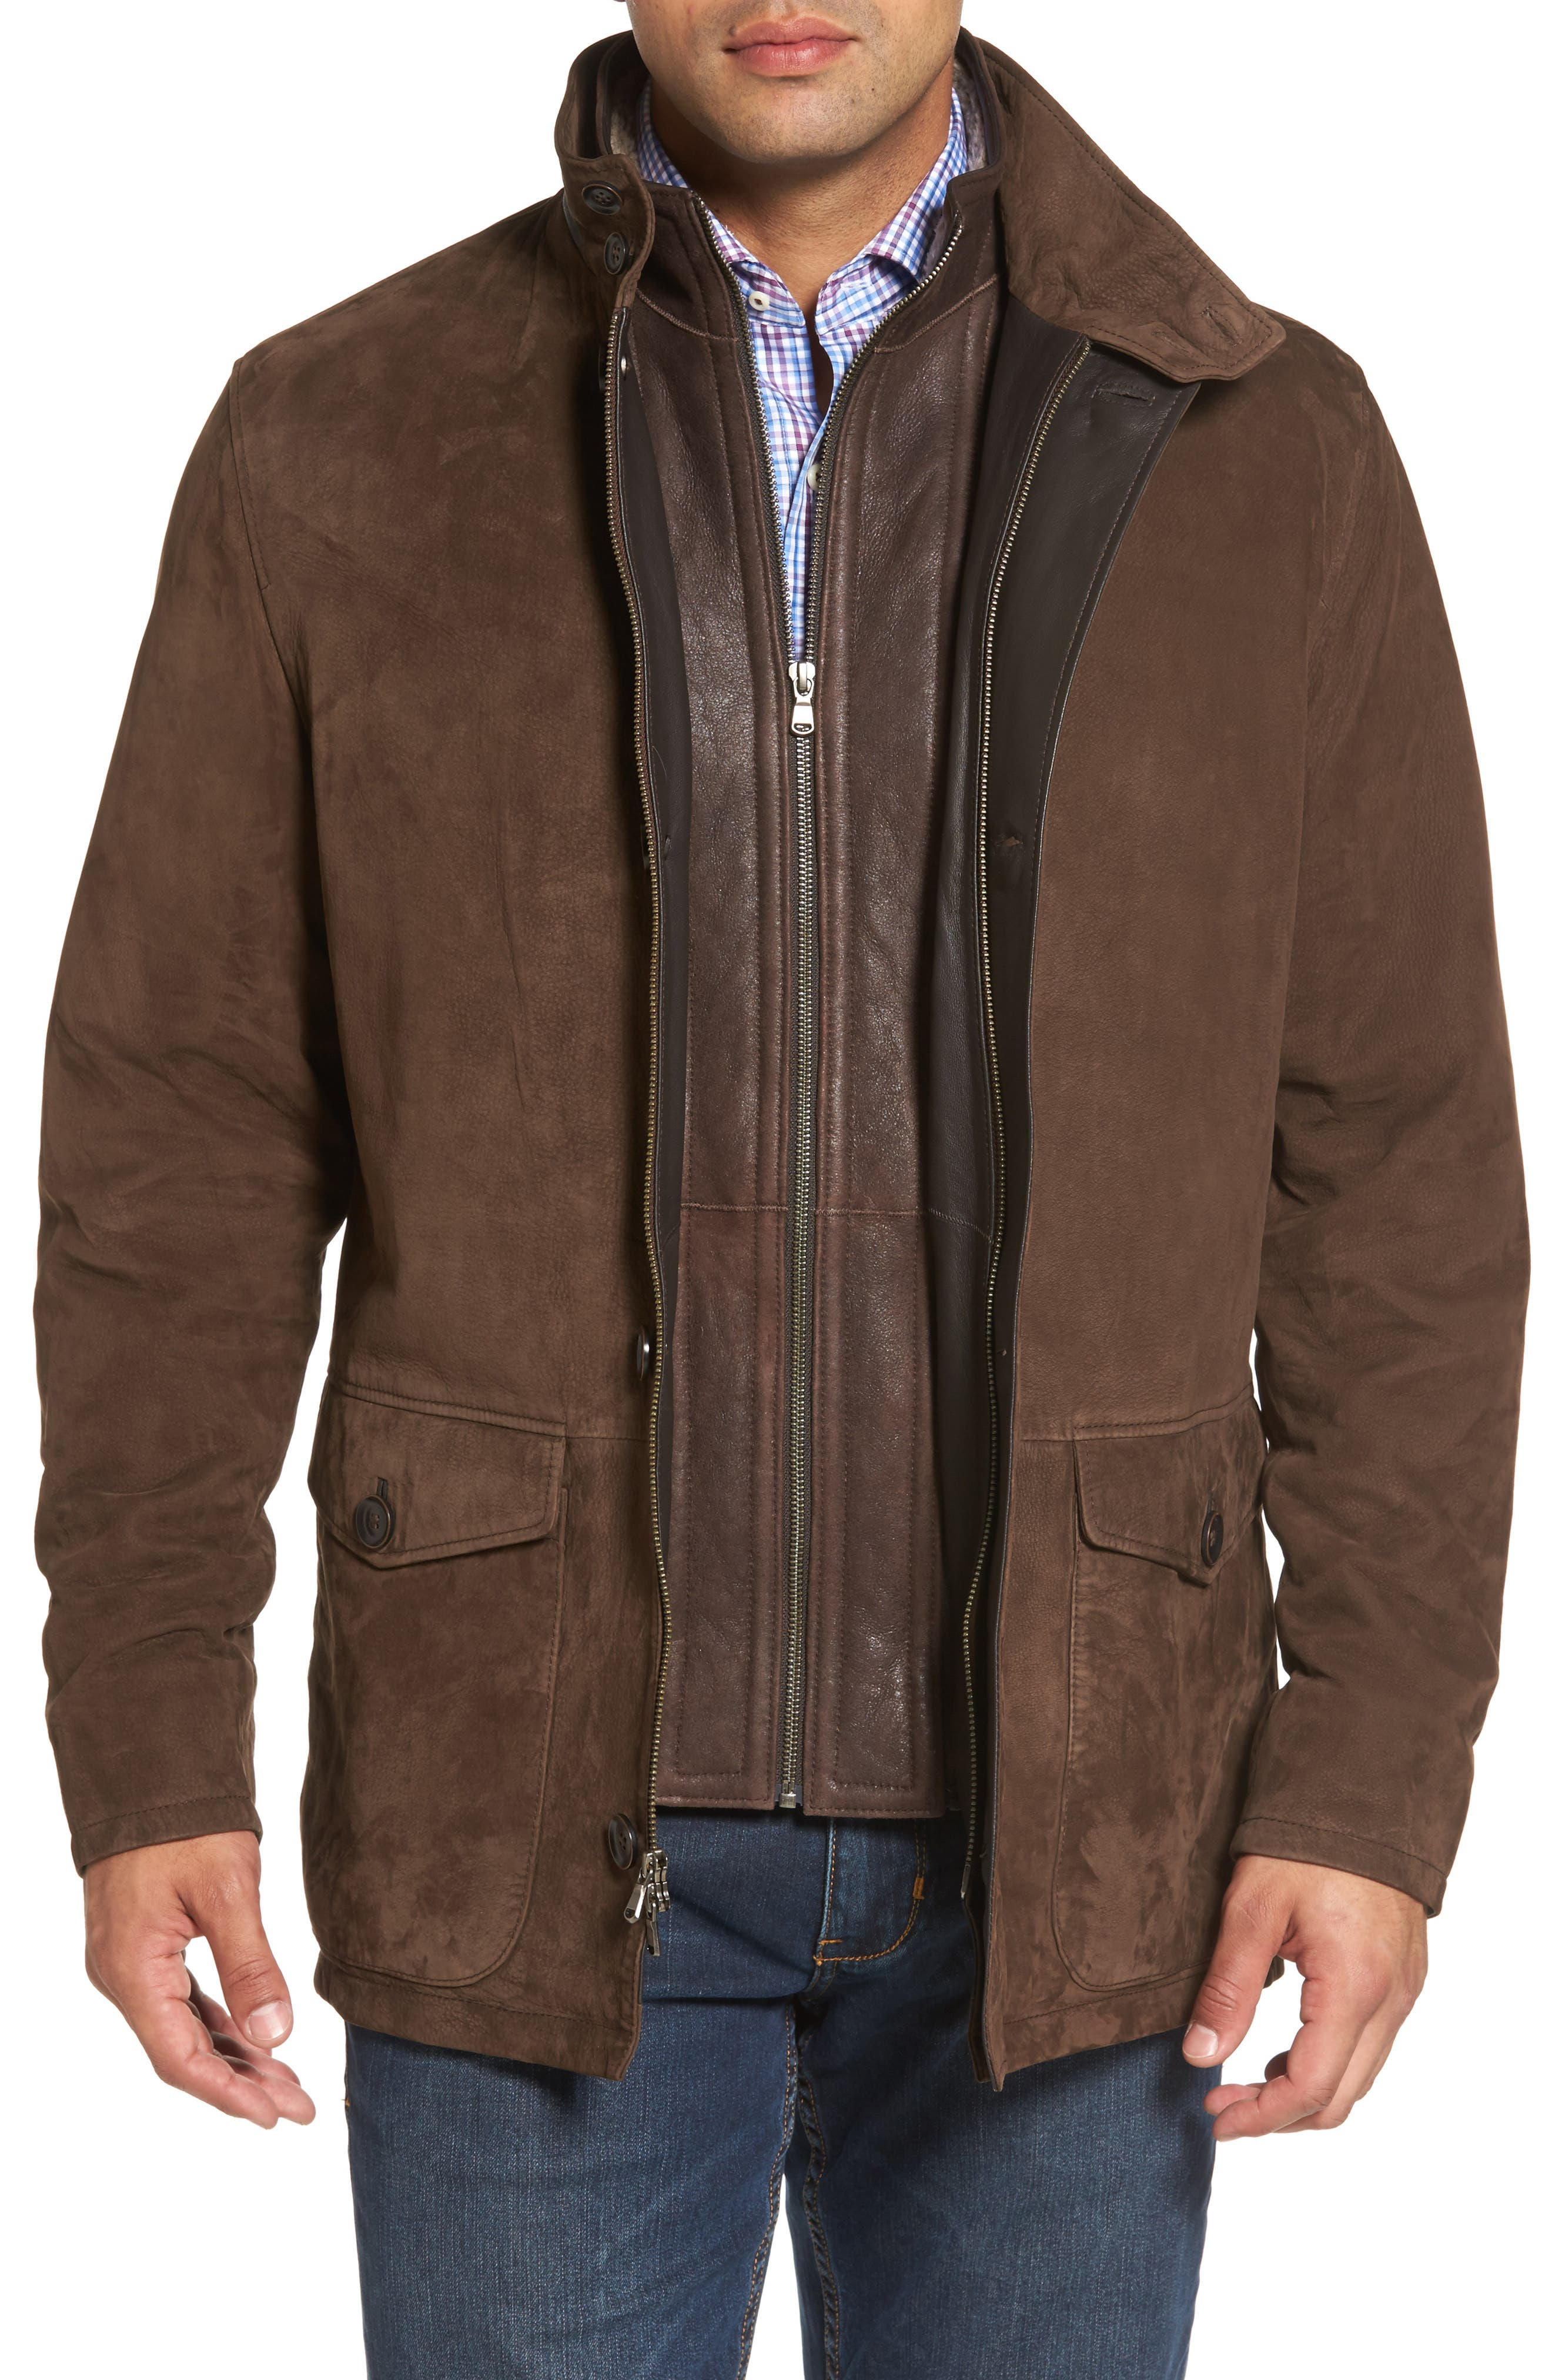 Steamboat Leather Jacket with Genuine Shearling Lined Bib,                         Main,                         color, 227